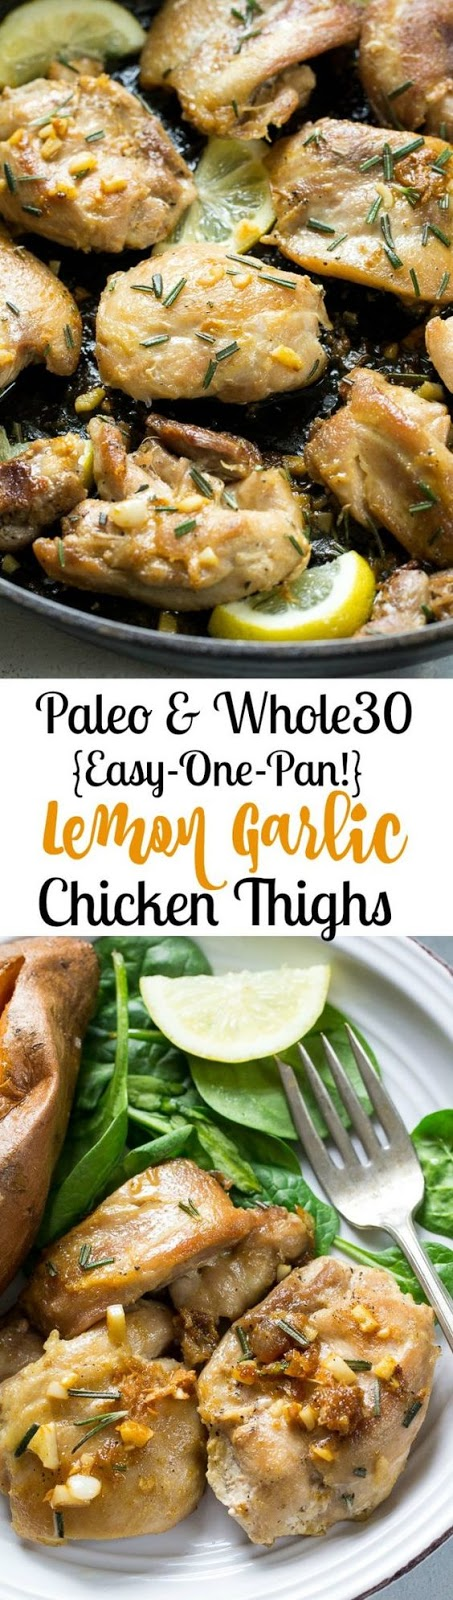 Easy Lemon Garlic Chicken Thighs {Paleo & Whole30}